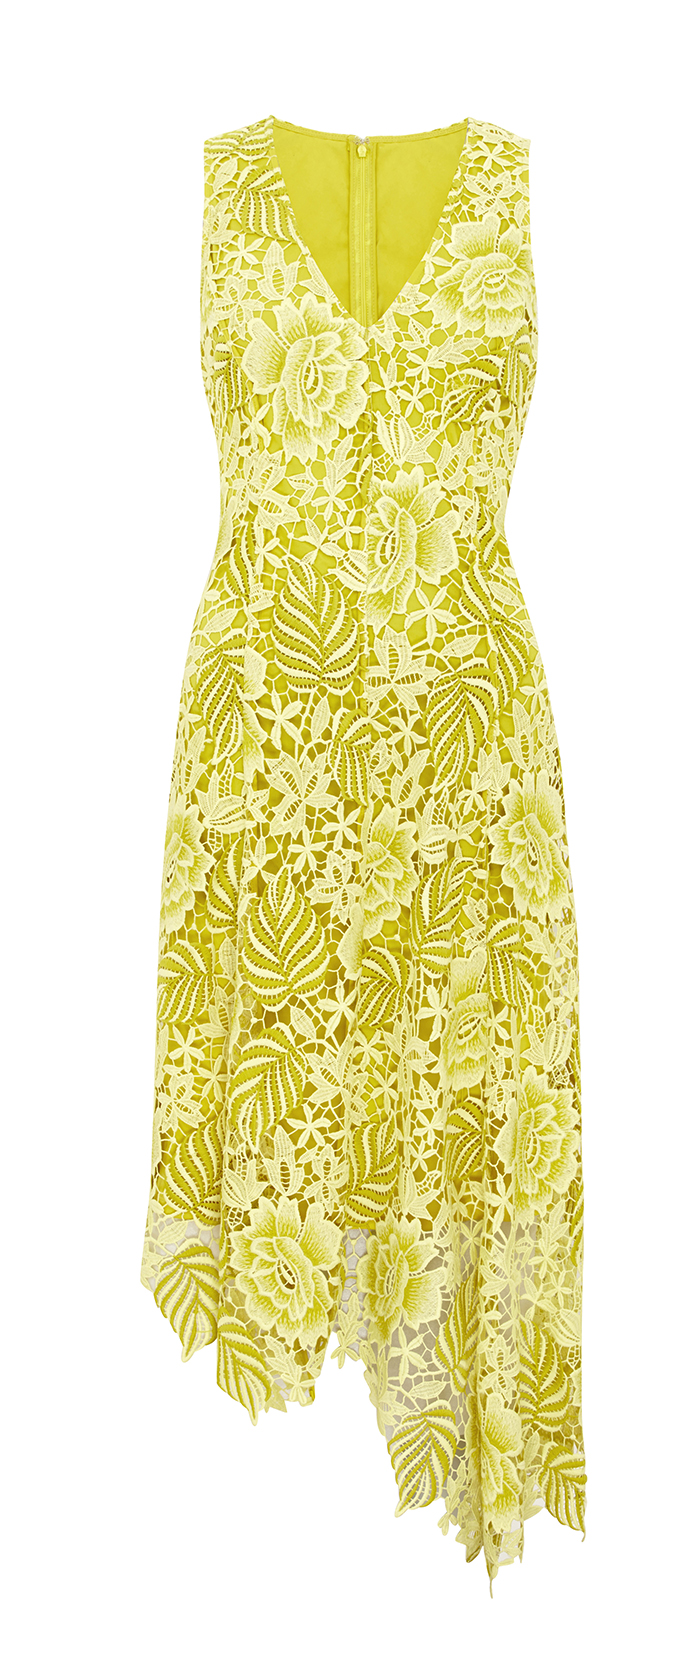 Our pick of the best yellow bridesmaid and wedding guest dresses ...